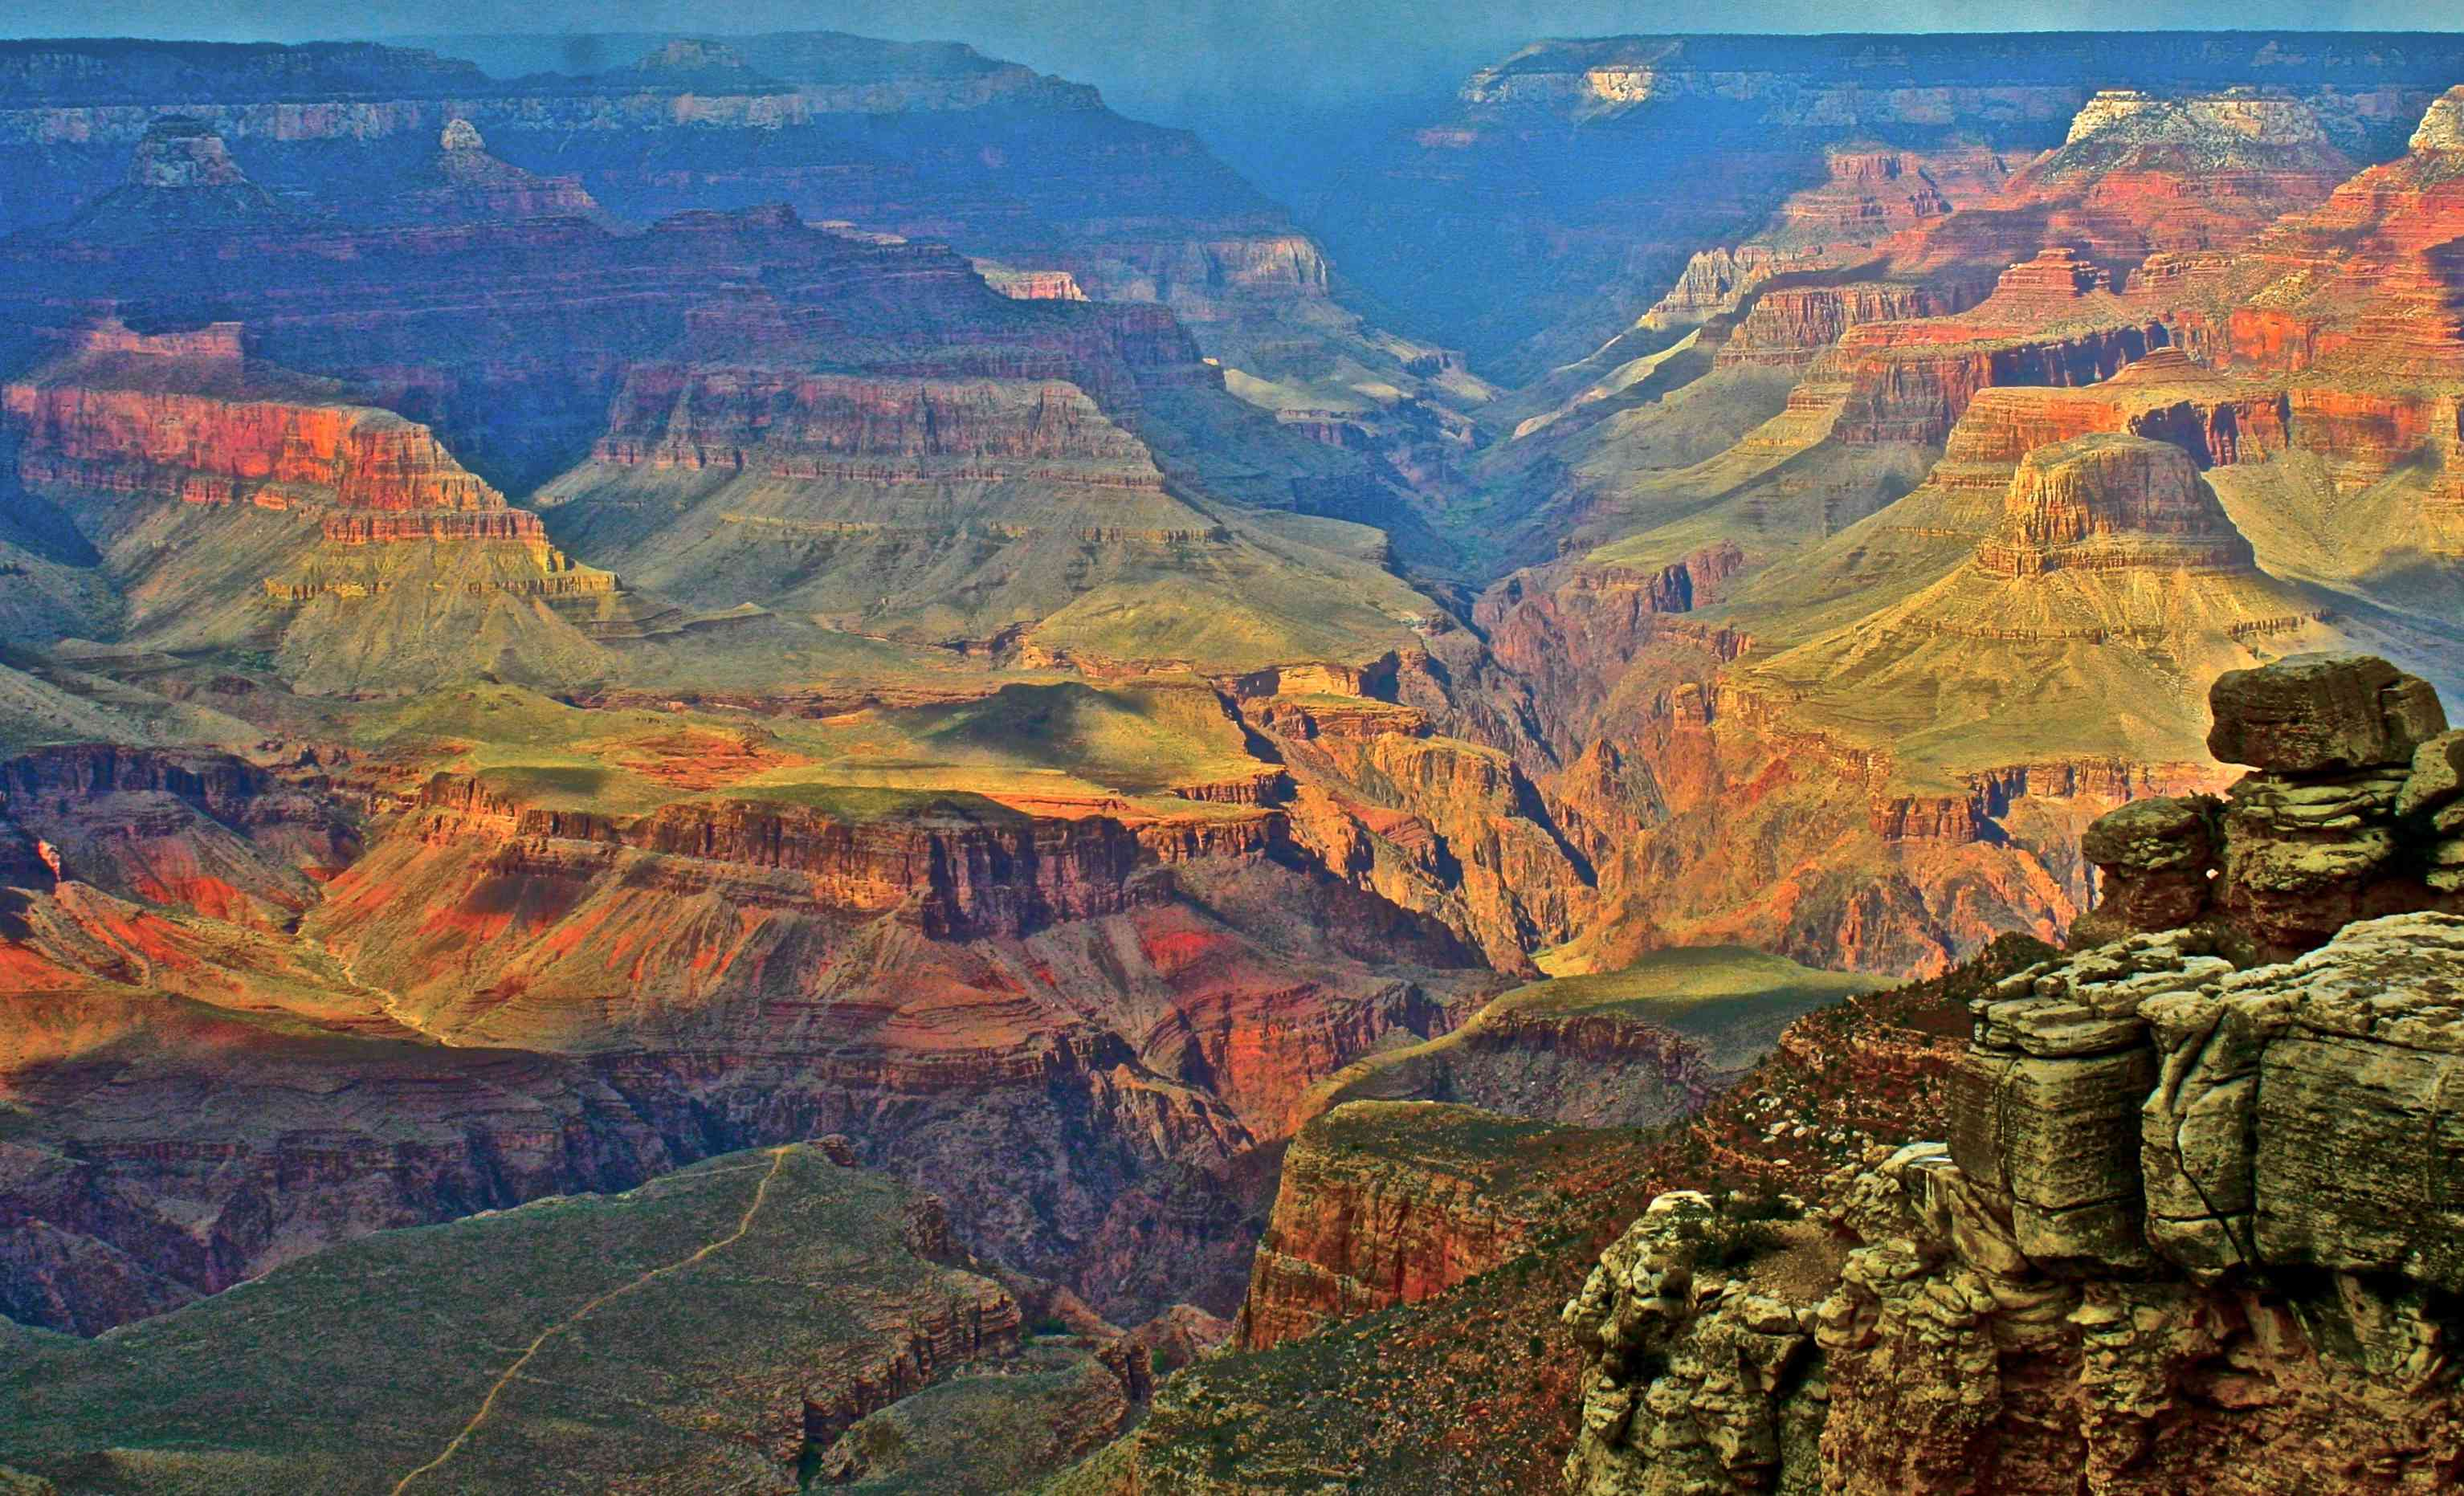 Solitude and serenity at the North Rim of the Grand Canyon overlook, located in Arizona